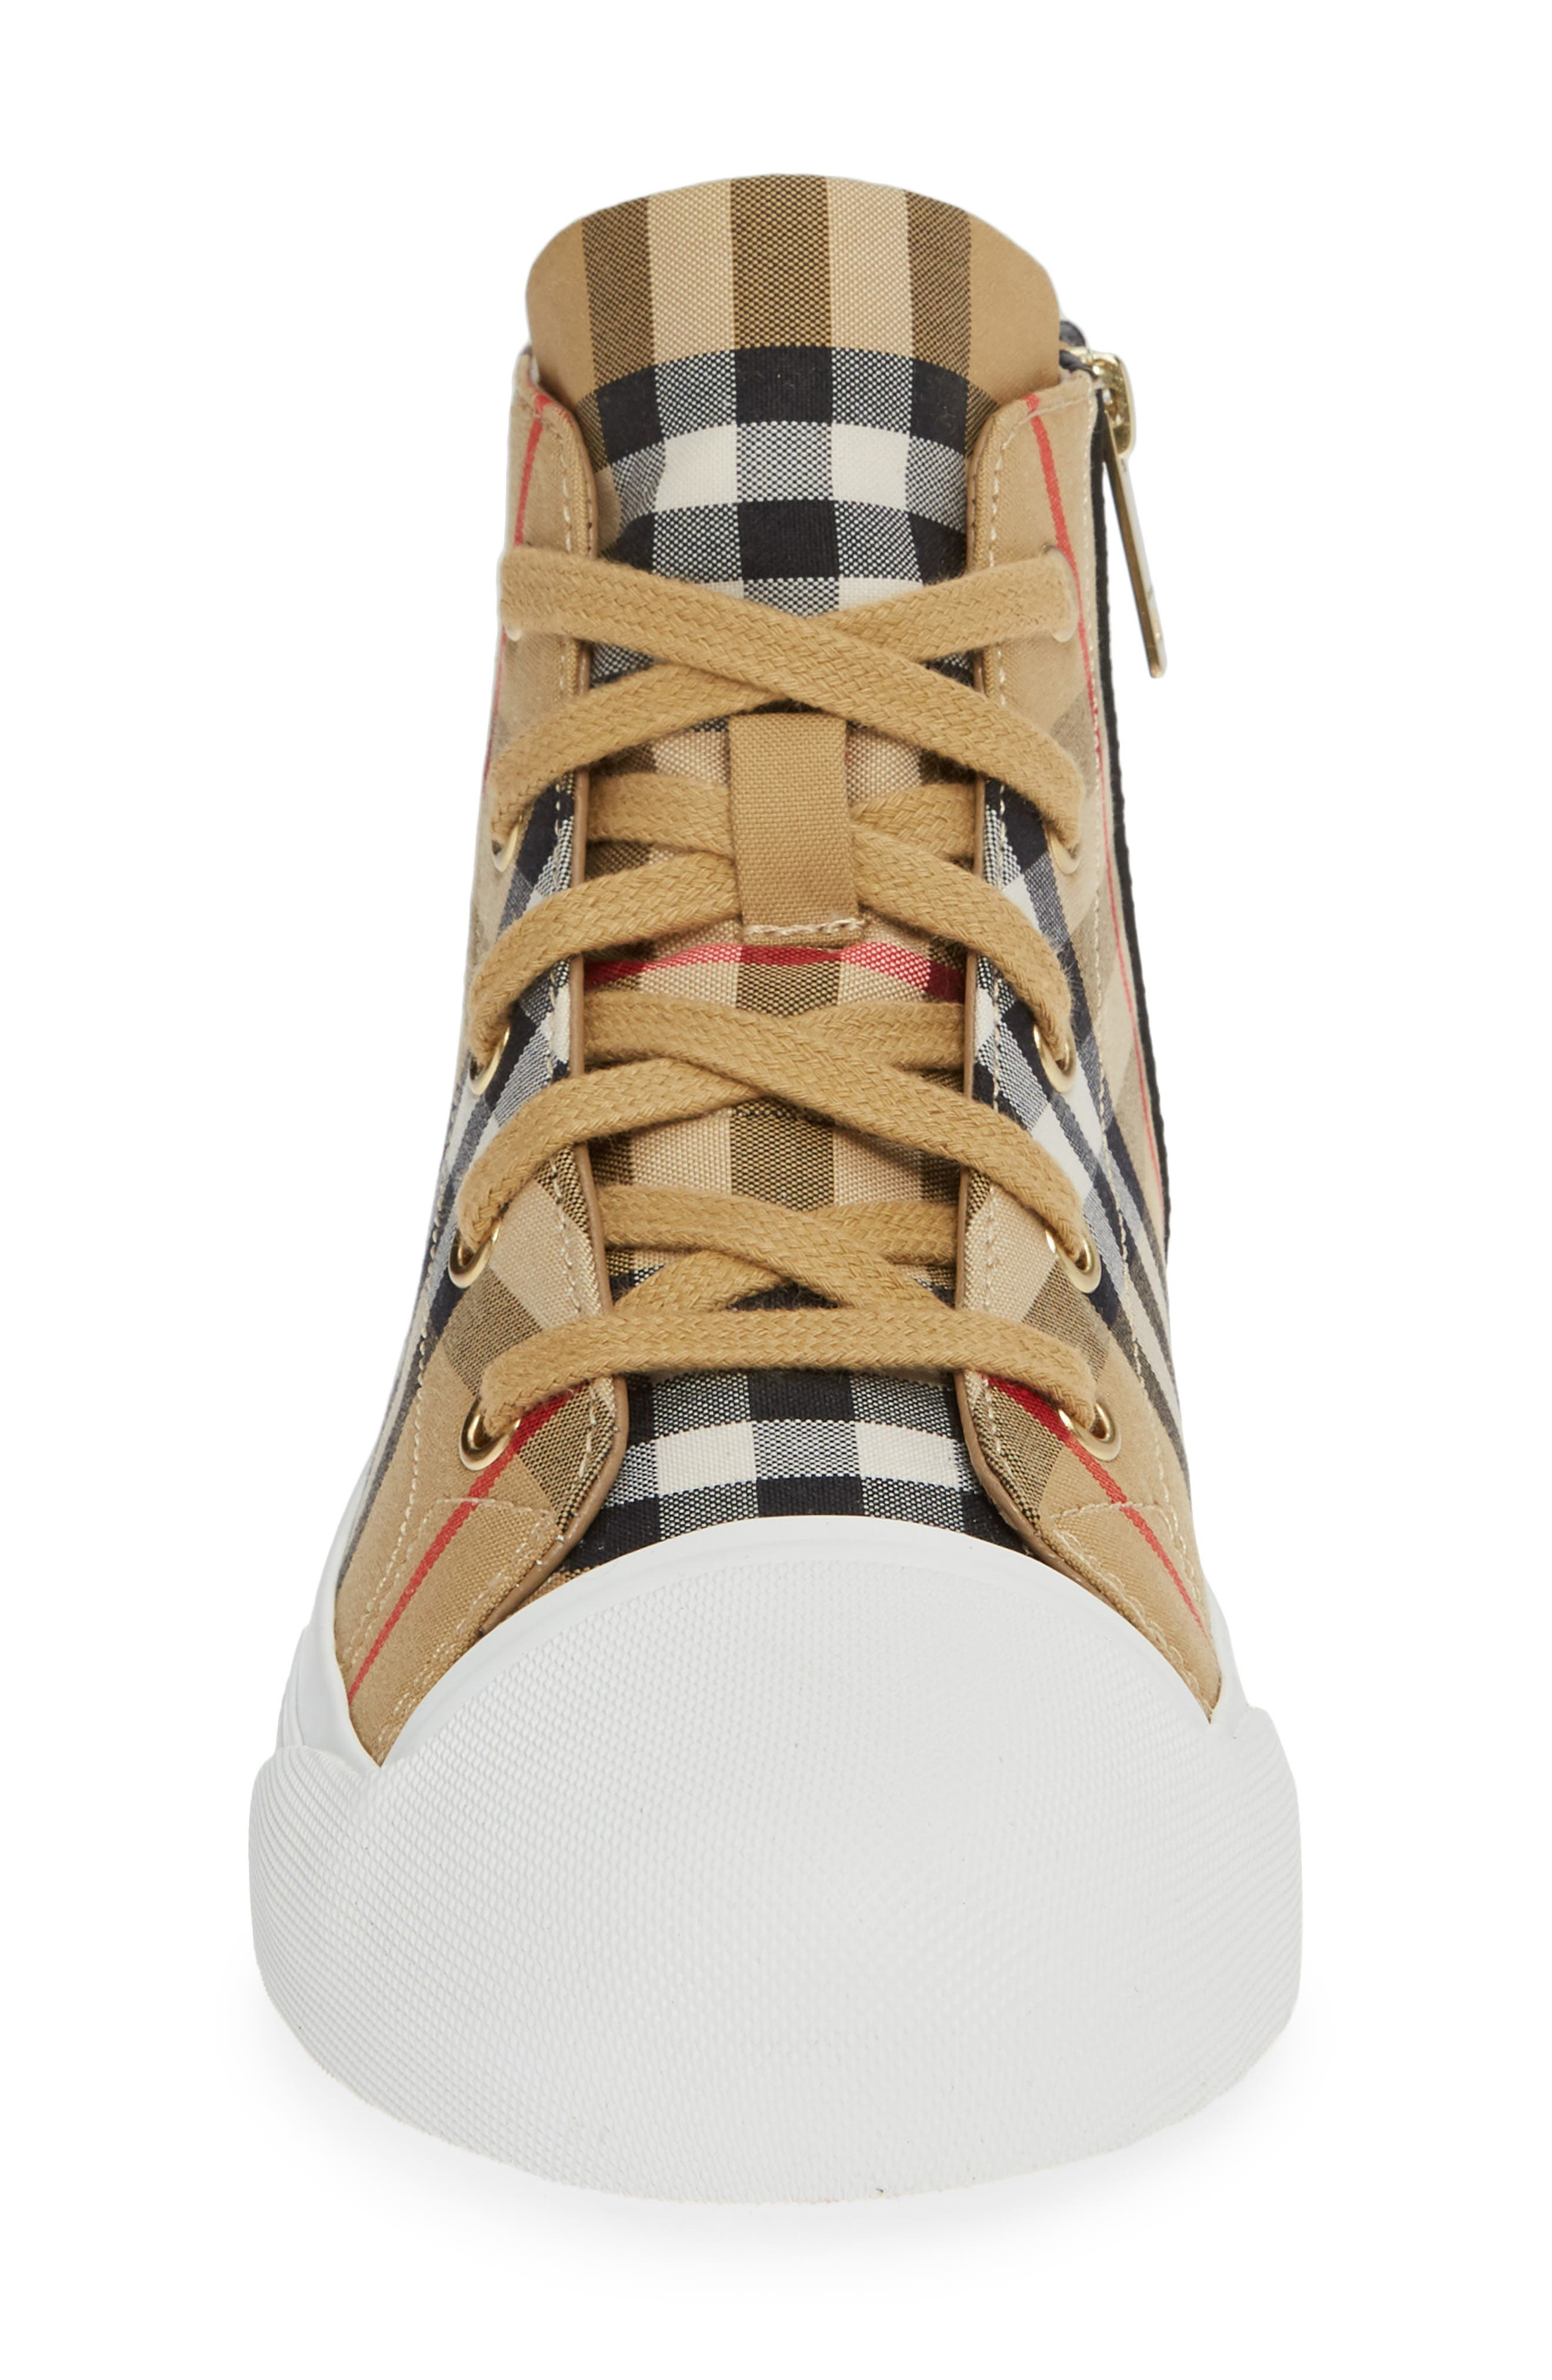 Belford High-Top Sneaker,                             Alternate thumbnail 4, color,                             ANTIQUE YELLOW/ OPTIC WHITE